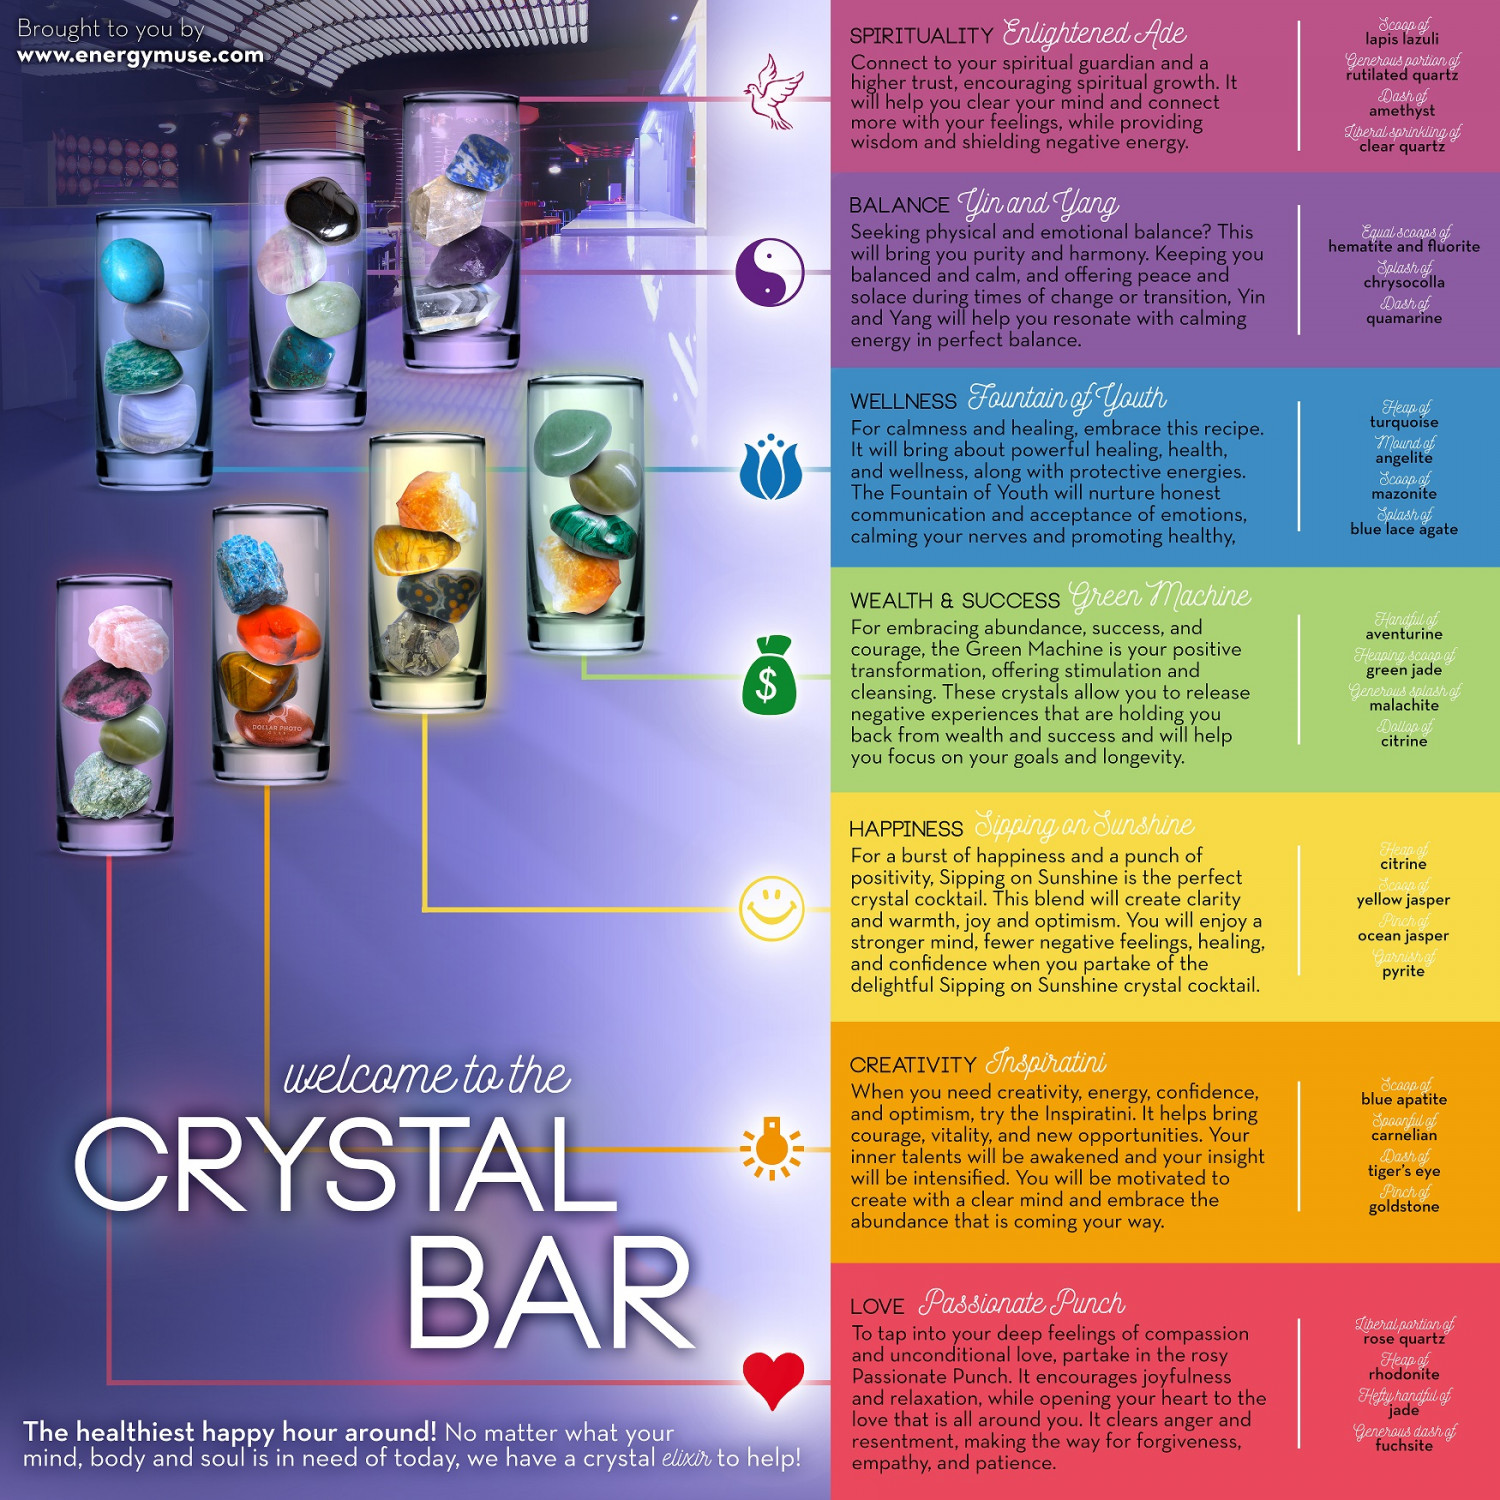 Welcome to the Crystal Bar! Infographic